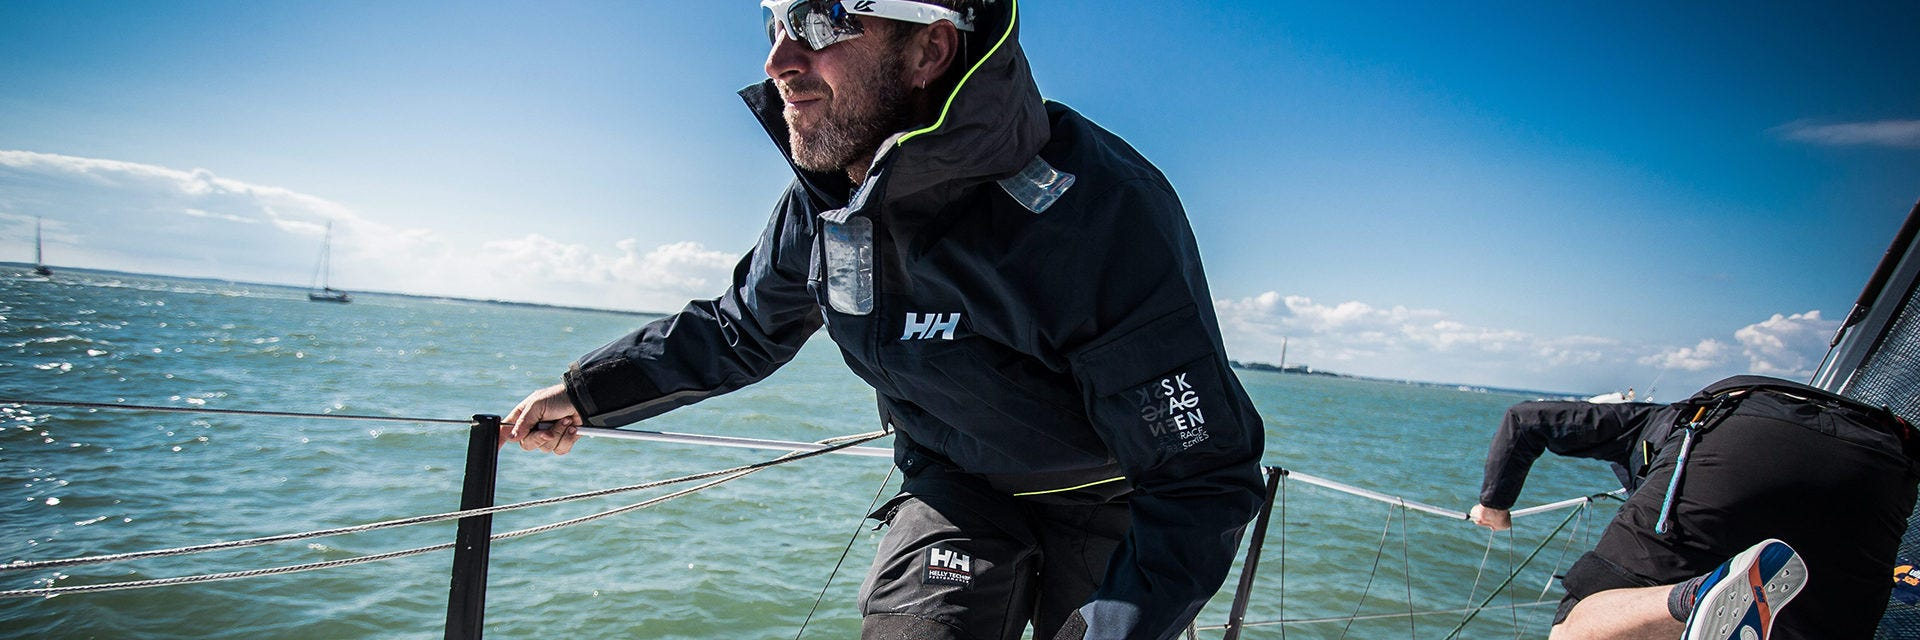 Helly Hansen sailing clothing